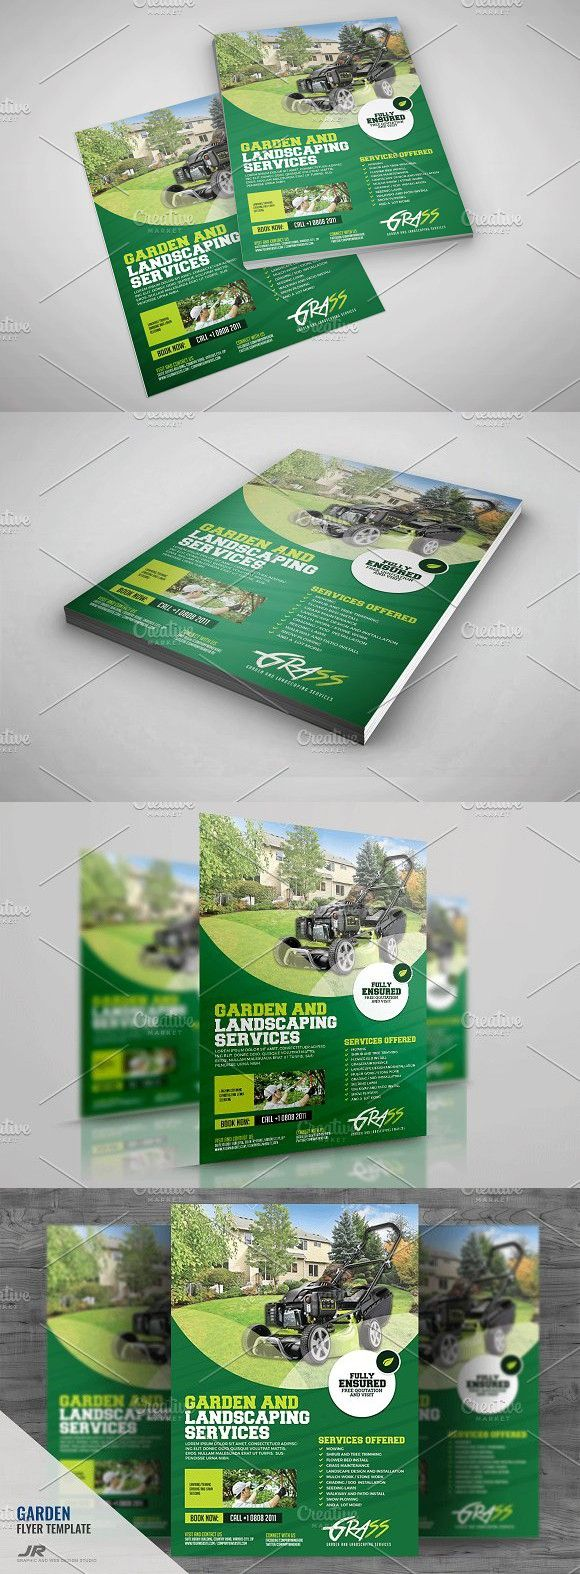 Garden and Landscaping Flyer #a4flyer #advertise